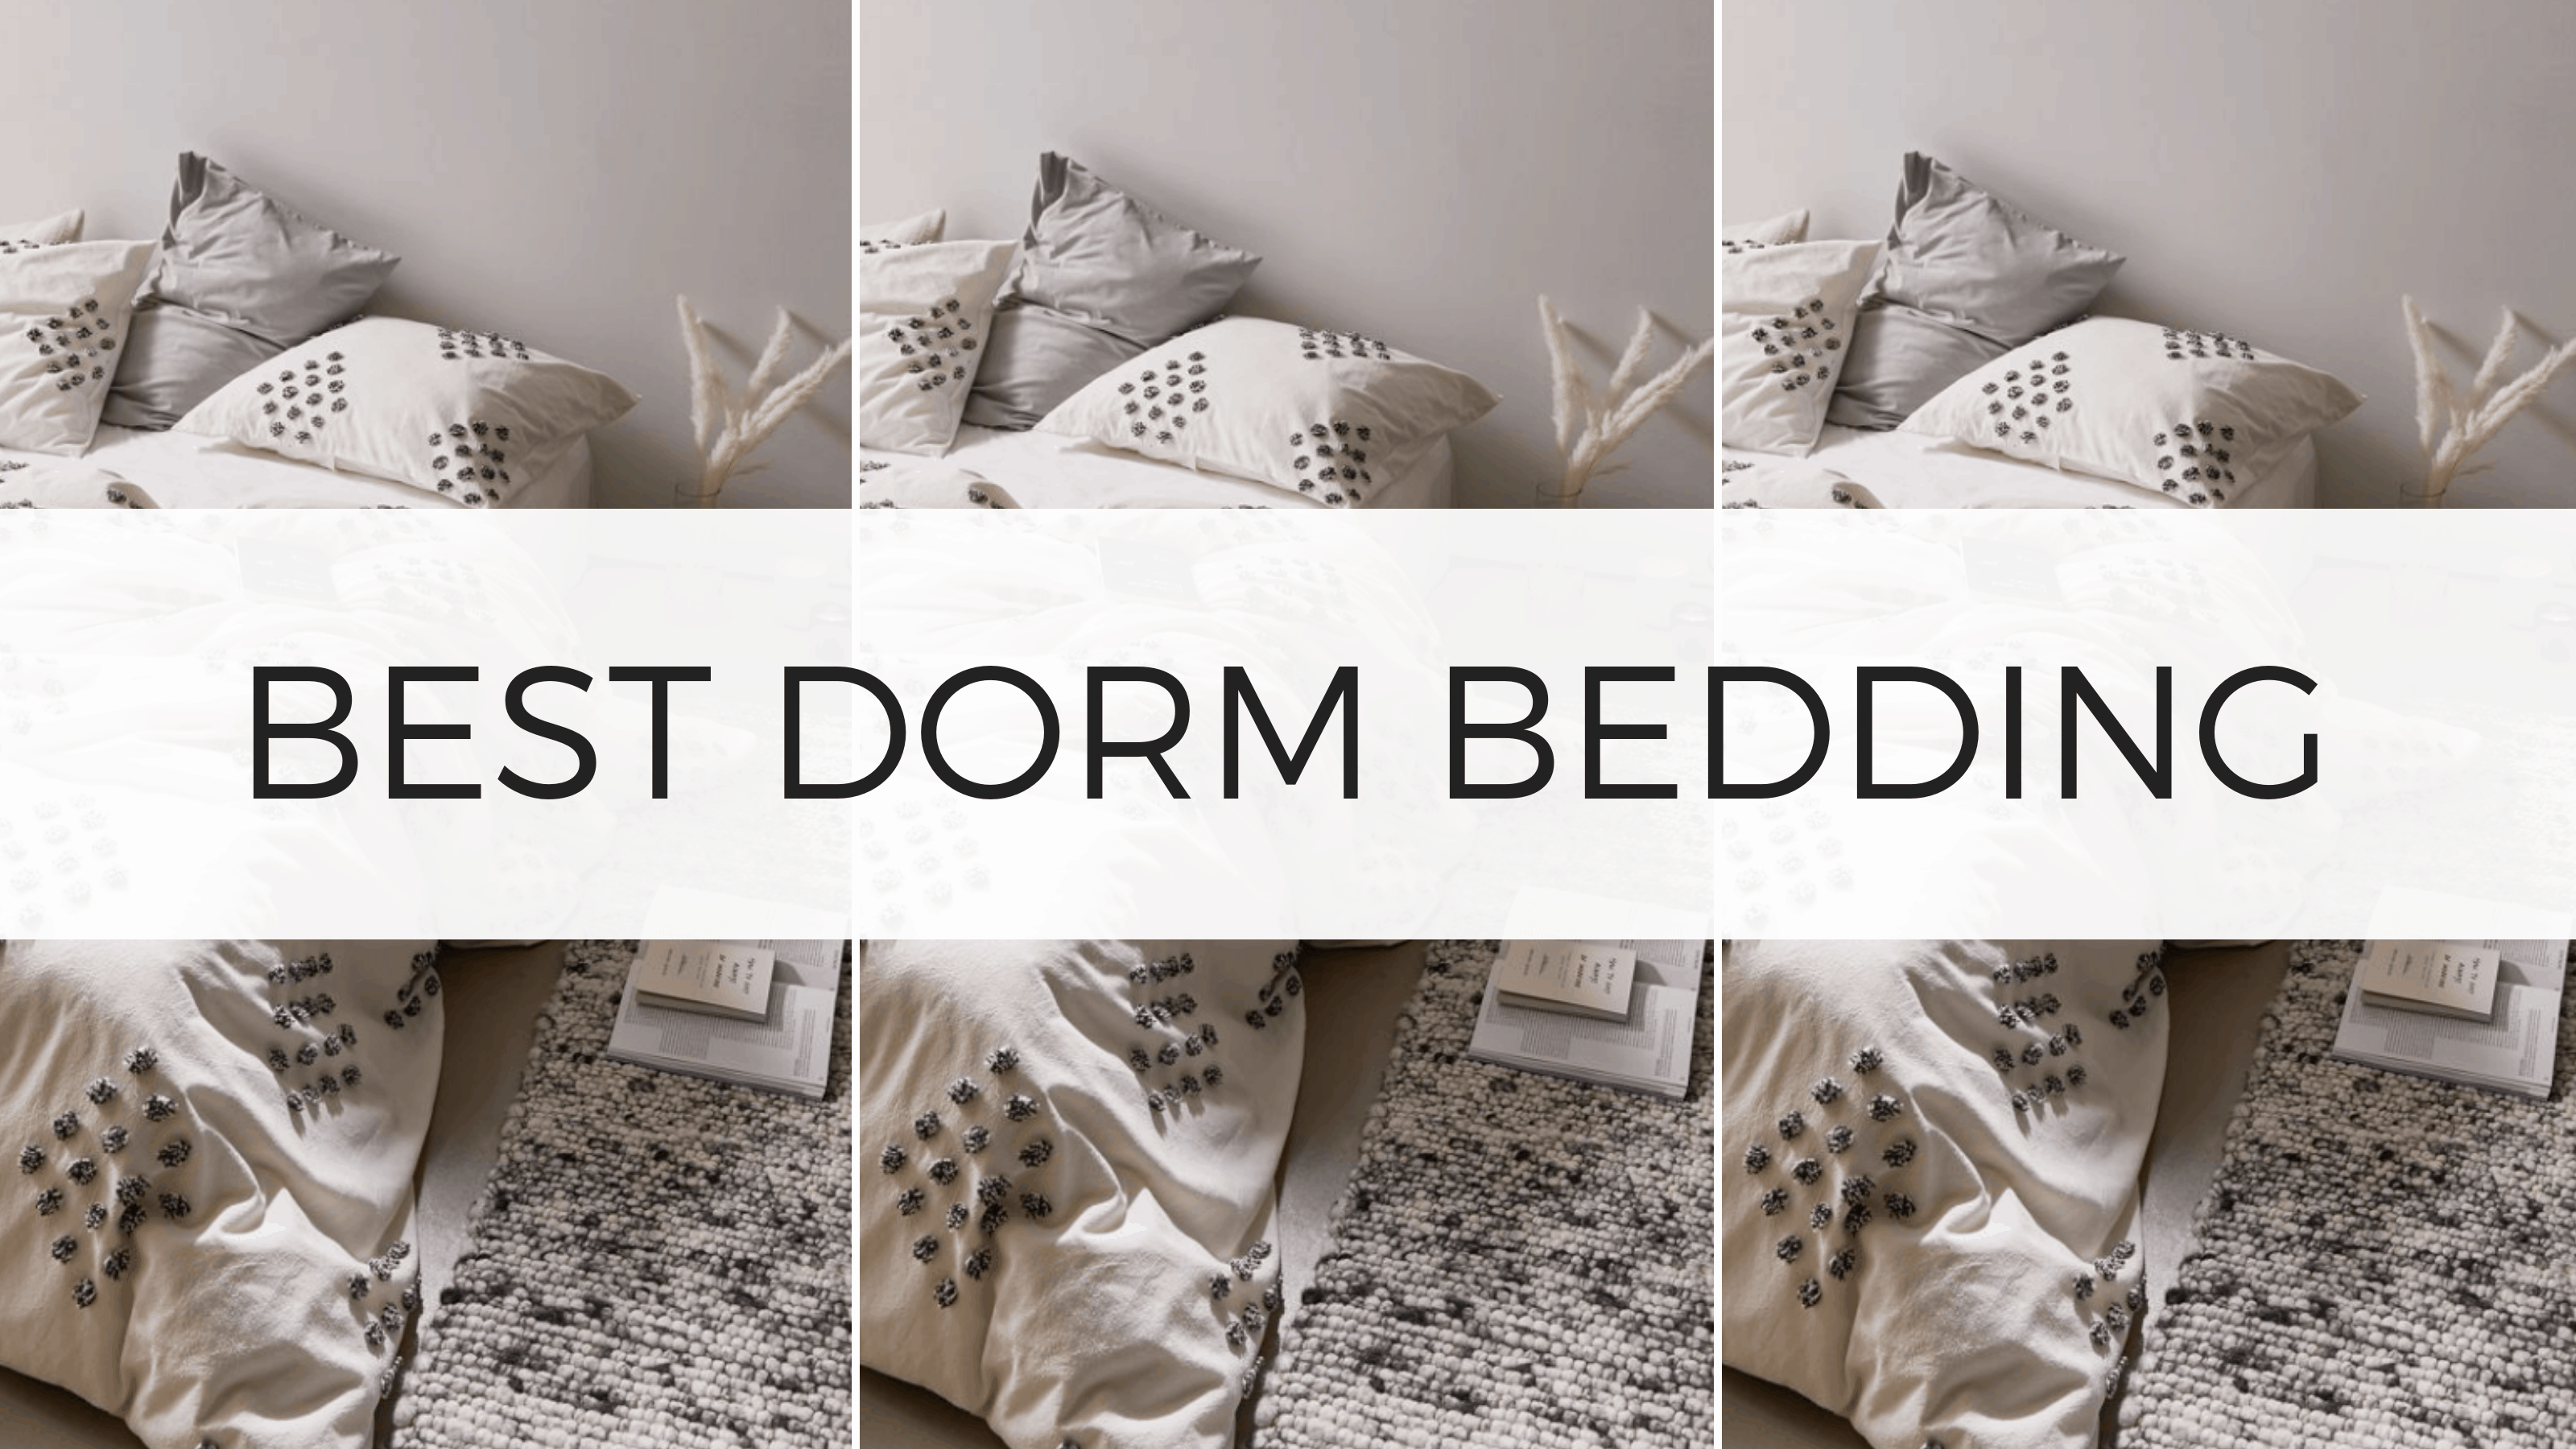 Insanely Cute Dorm Bedding Everyone Is Obsessed With This Year By Sophia Lee